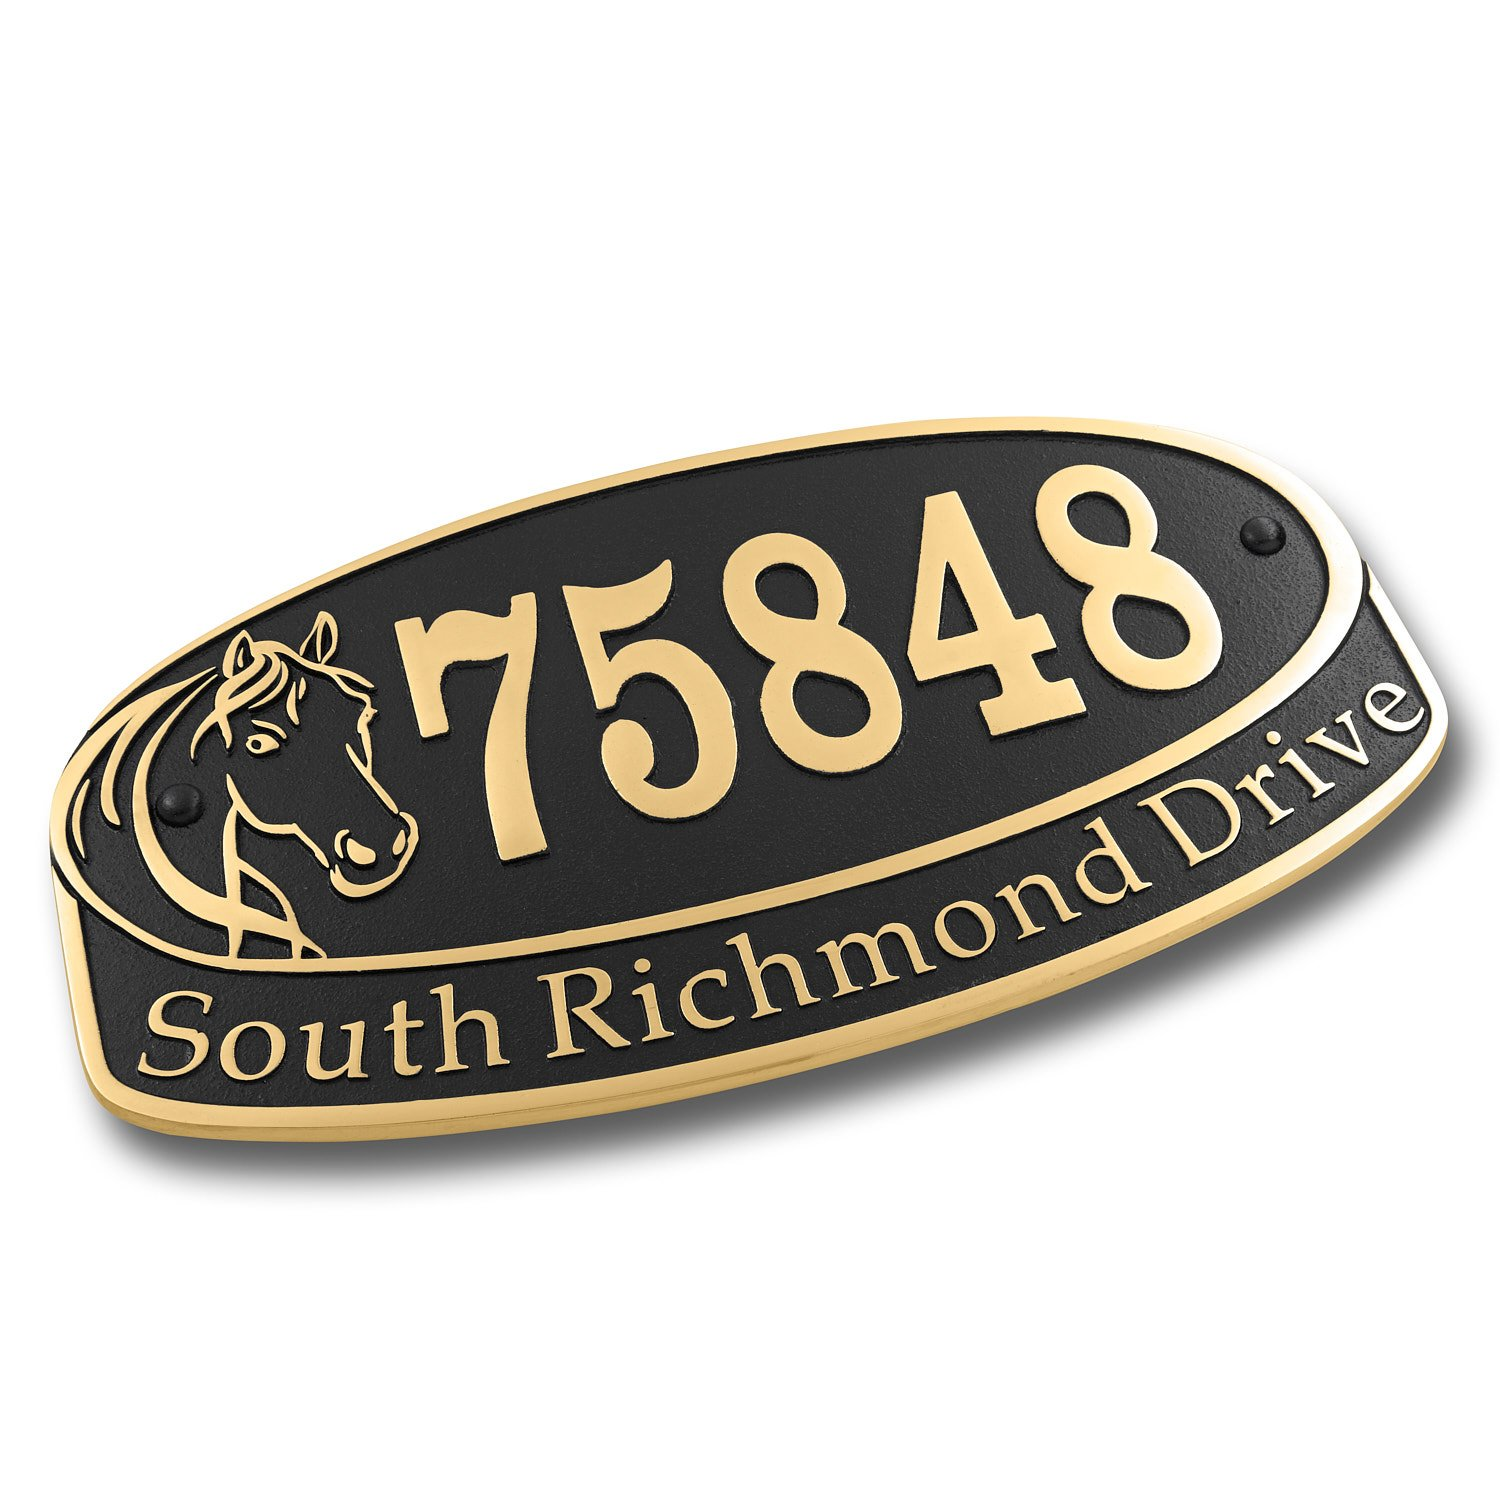 Personalized Horse Lover House Number Plate Sign| Custom Mailbox Address Name Plaque In Solid Cast Metal | No Cheap Looking Plastic Or Acrylic For Your Home Just Unique Quality English Craftsmanship by The Metal Foundry Ltd